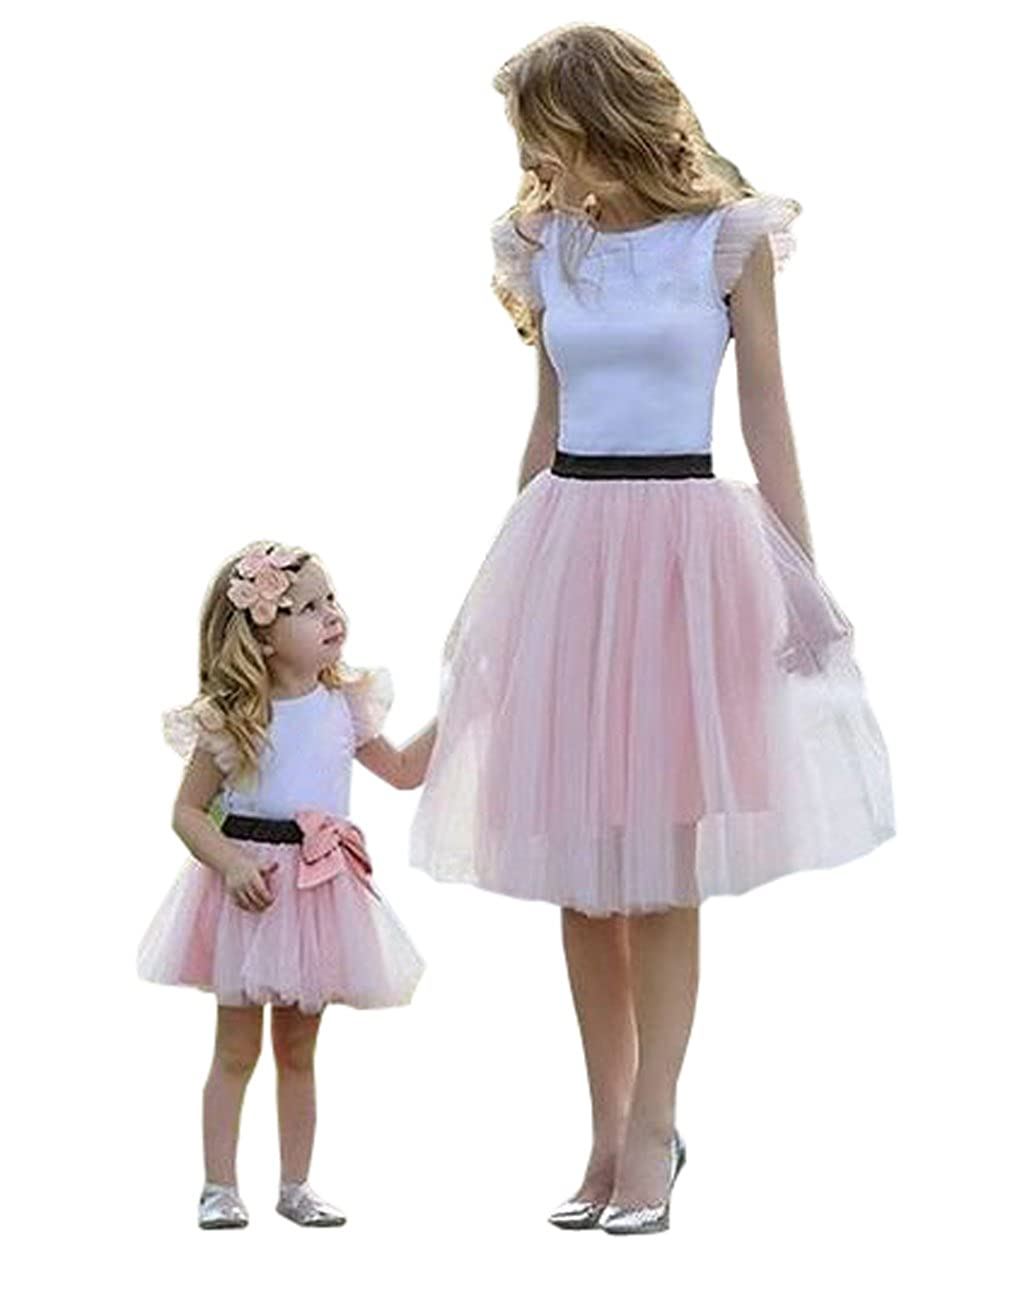 49d92210fbb matching mother daughter outfits for adult and baby girls. Matching family  outfits with lace sleeve tshirt top and lace tutu skirt sets